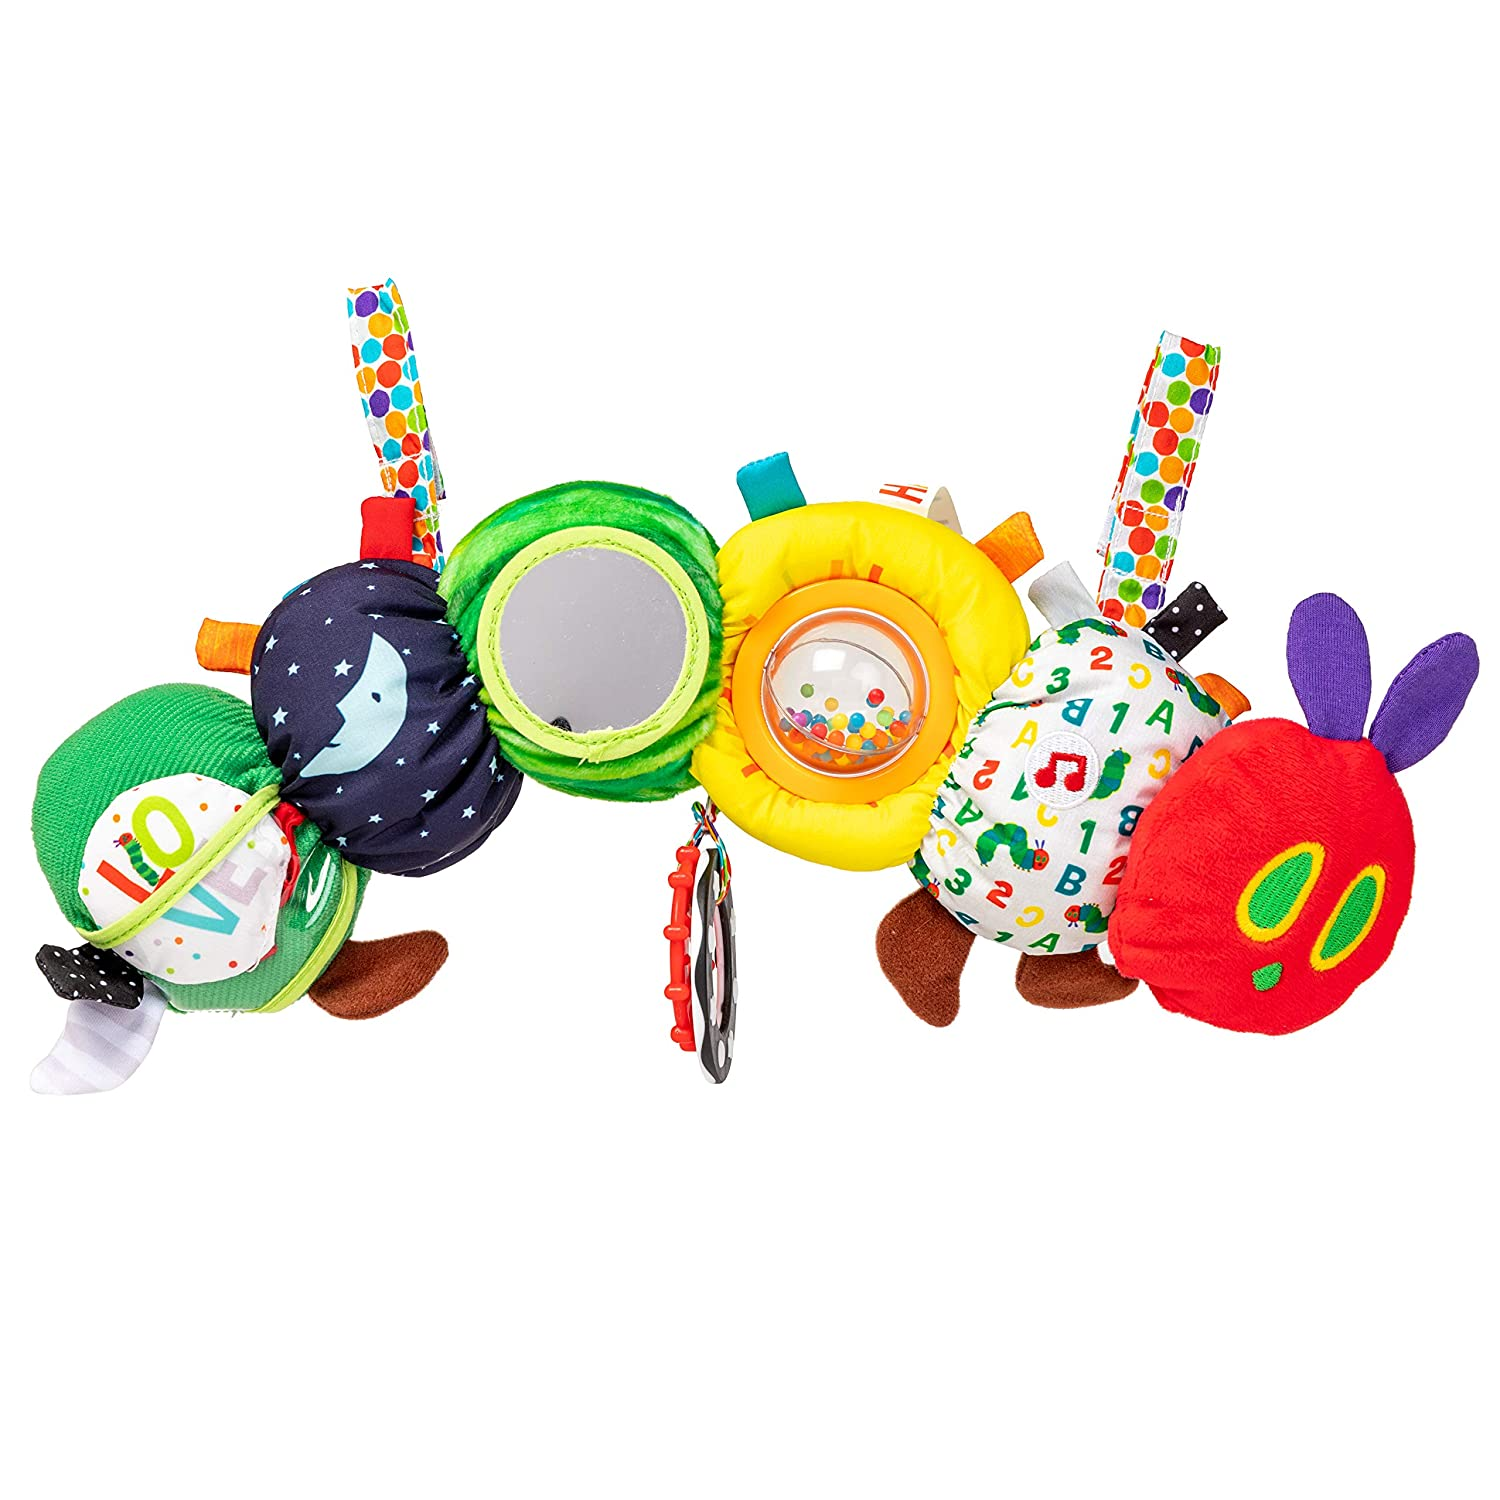 World of Eric Carle The Very Hungry Caterpillar Activity Toy